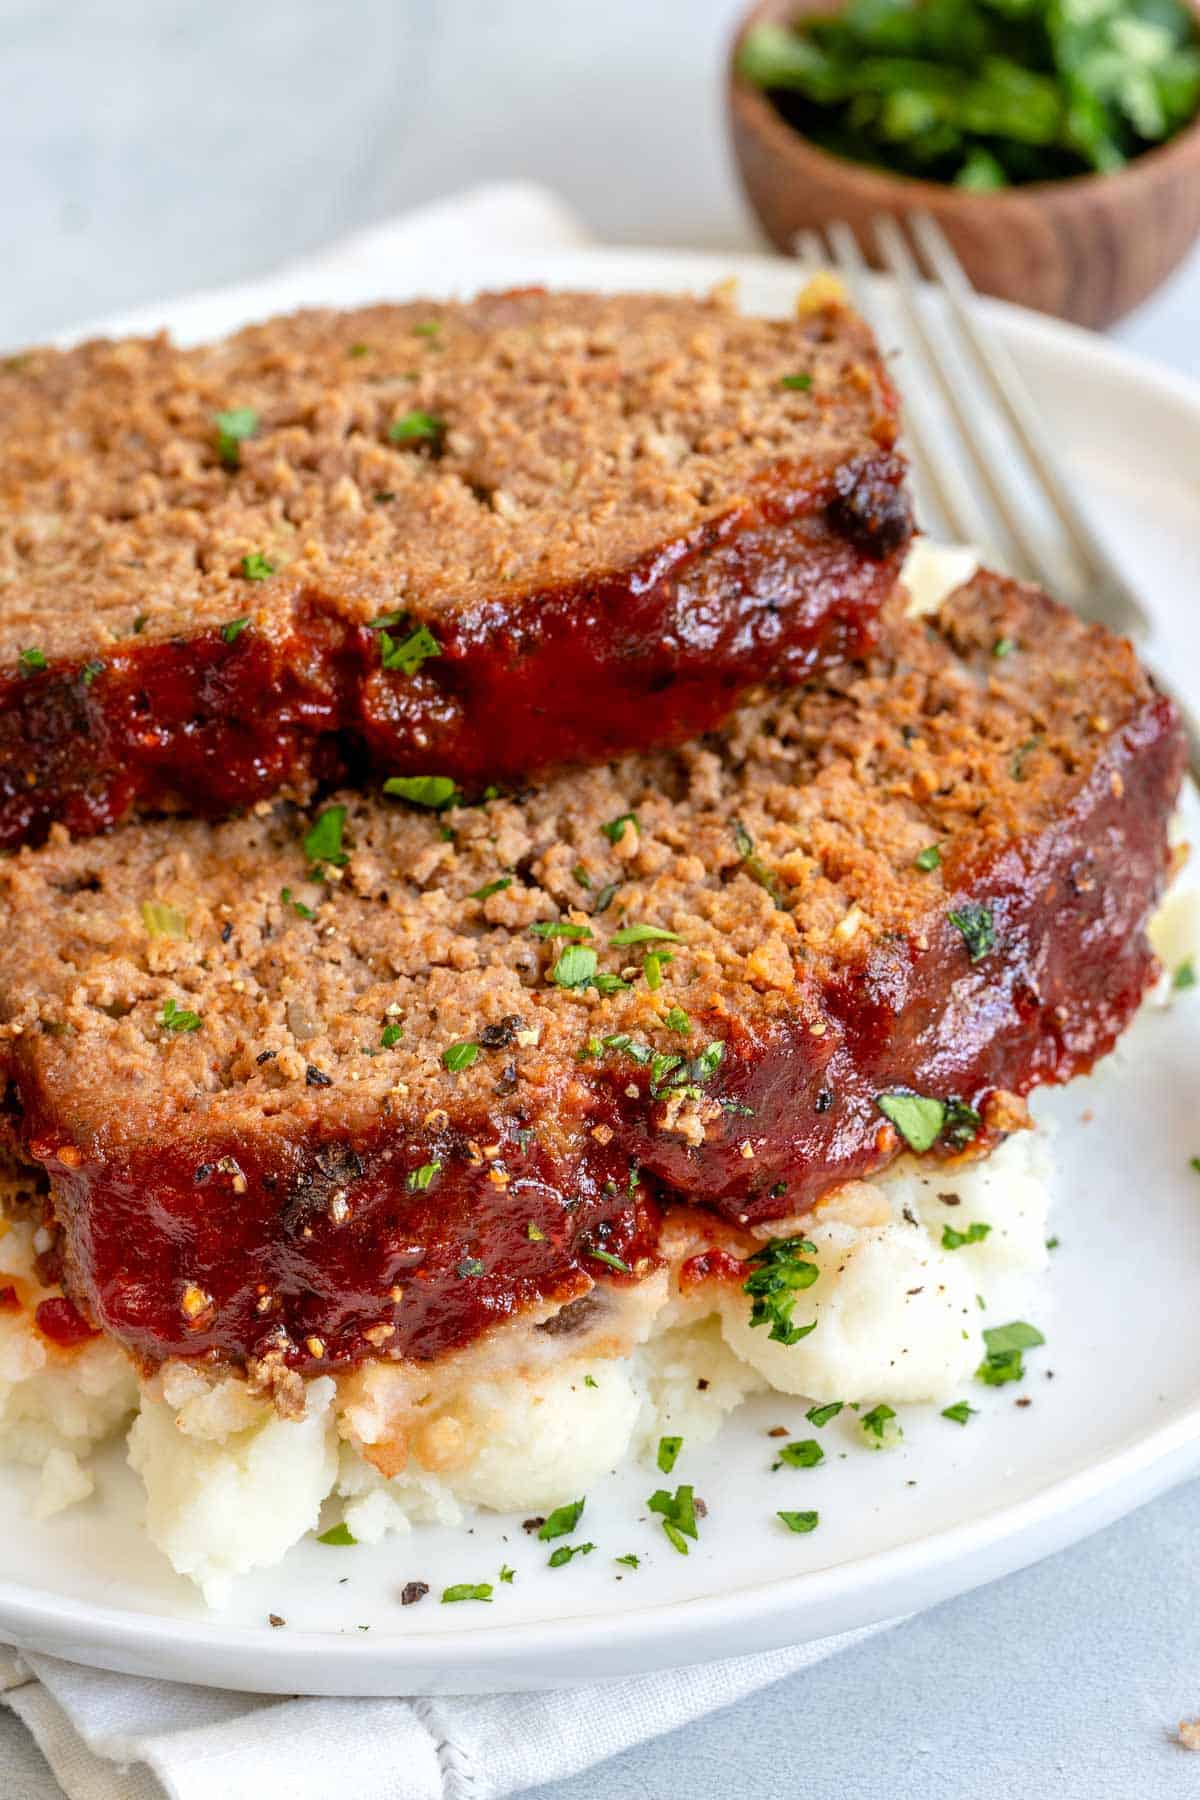 two slices of meatloaf on a dinner plate served with mashed potatoes